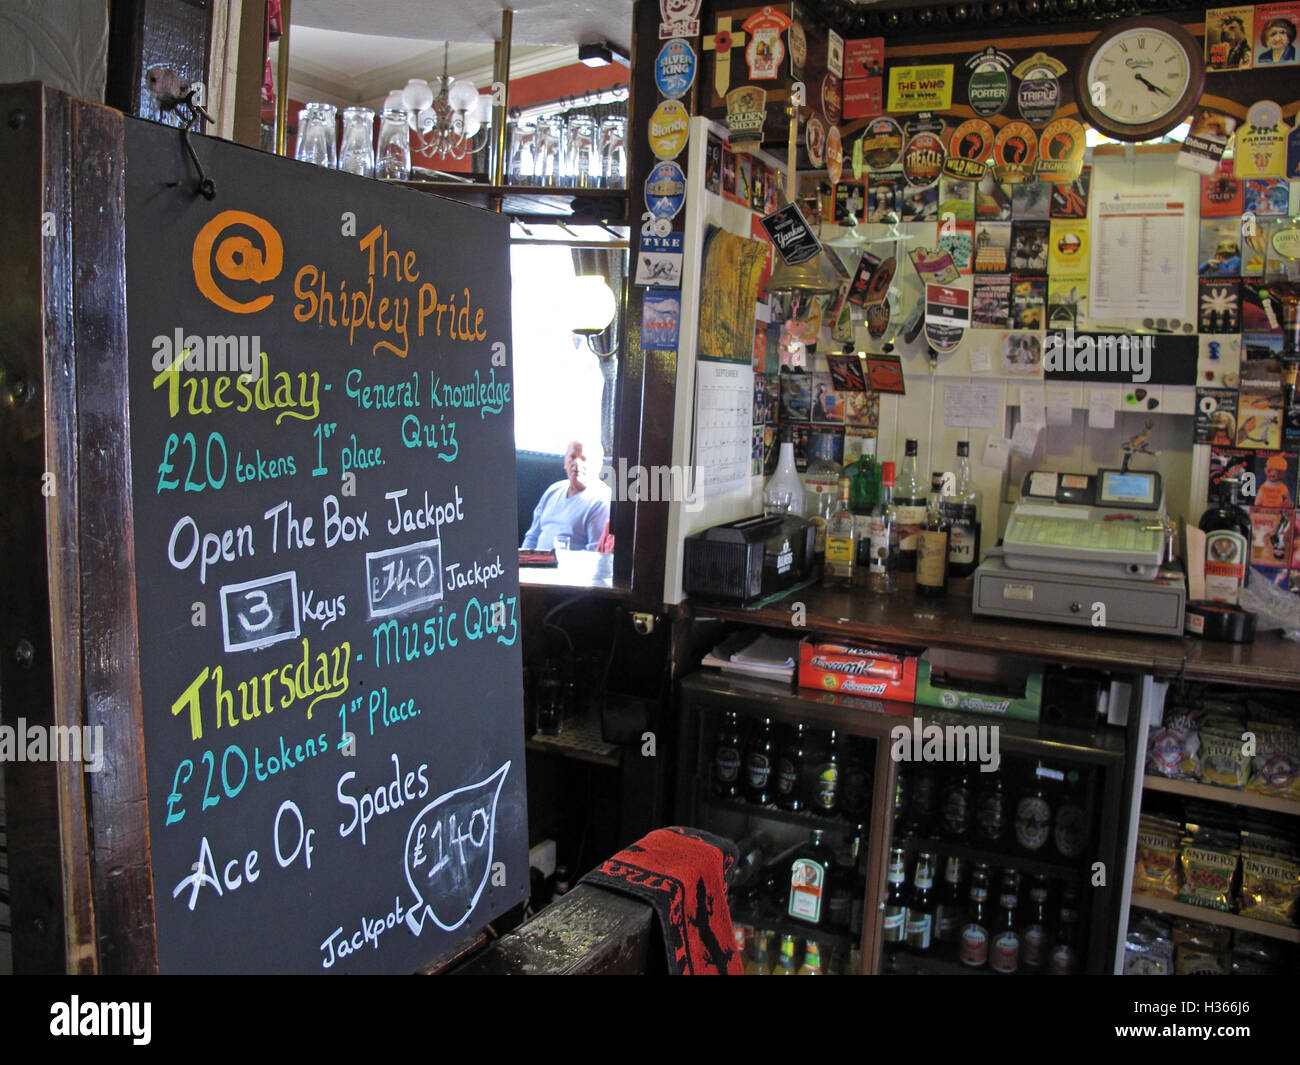 Inside the Shipley Pride Pub, West Yorkshire, England, UK - Stock Image